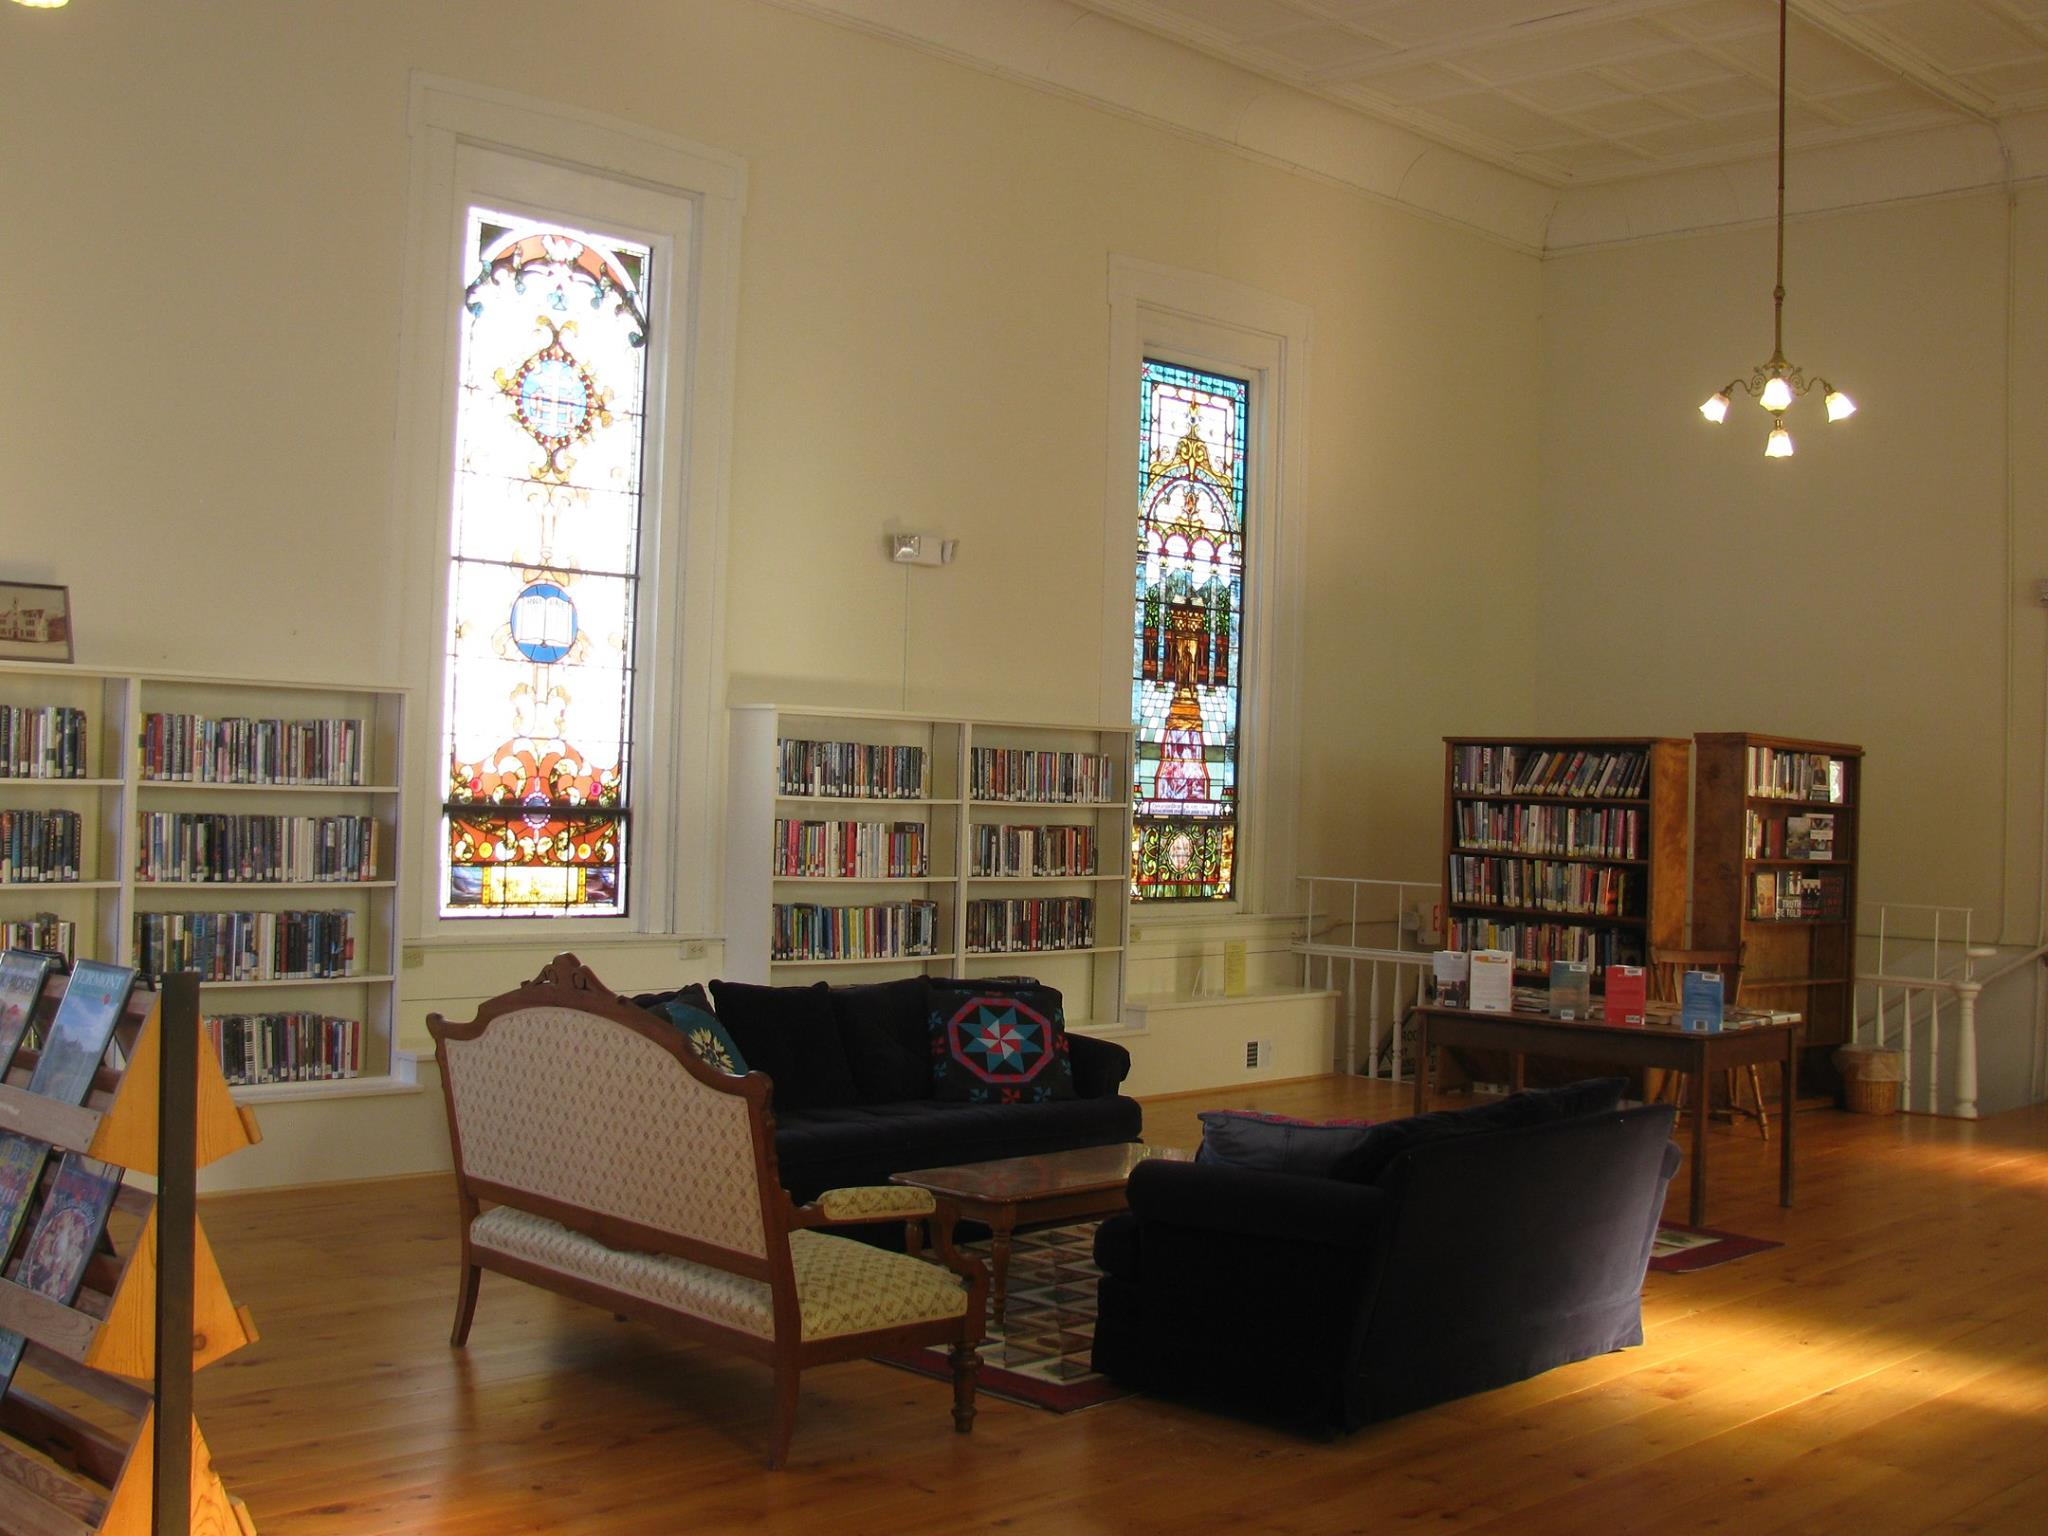 Second Floor of the library